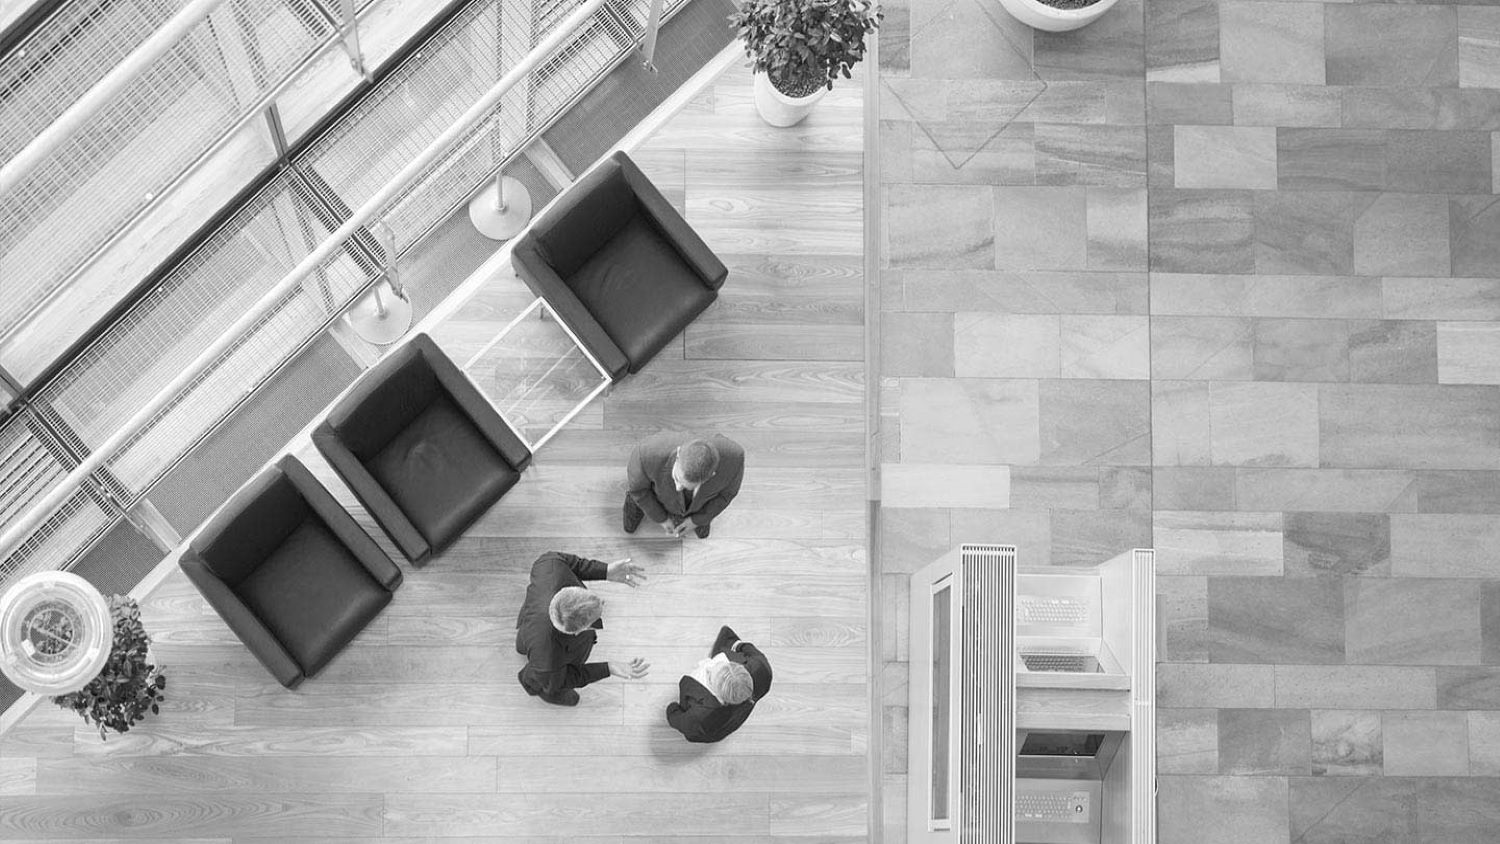 Picture from above. Three people greeting each other standing in a lobby.